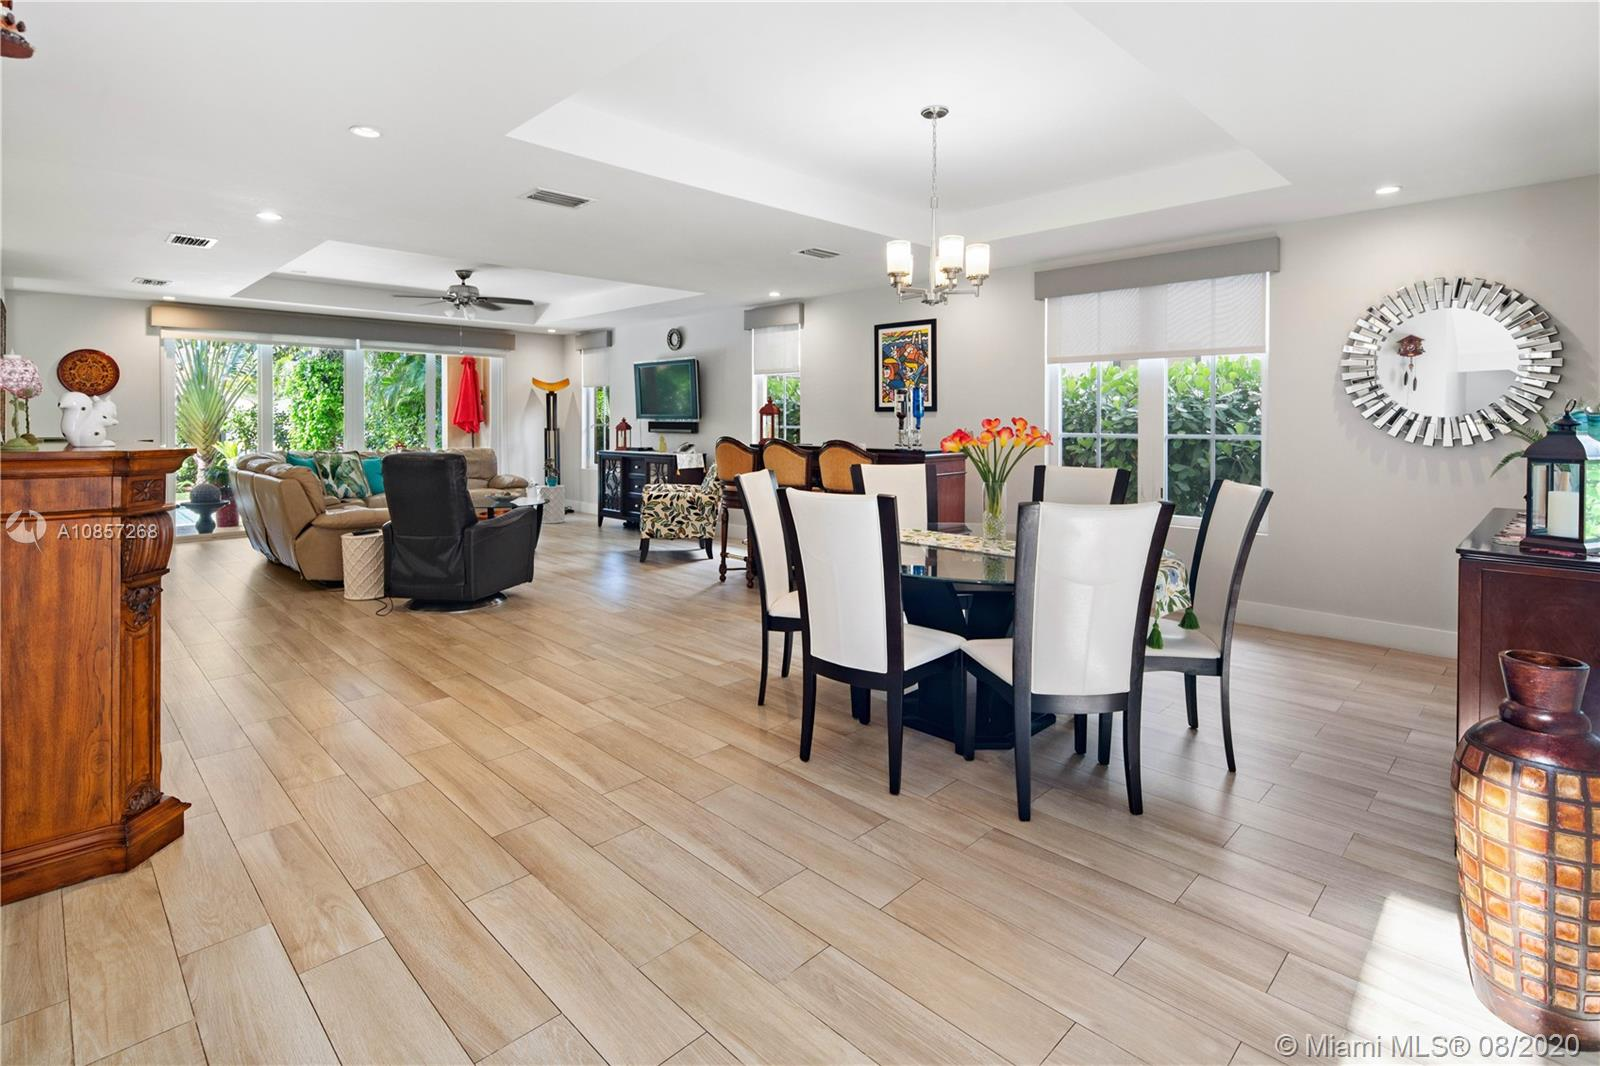 405 Majorca Ave, Coral Gables, Florida 33134, 4 Bedrooms Bedrooms, ,3 BathroomsBathrooms,Residential,For Sale,405 Majorca Ave,A10857268